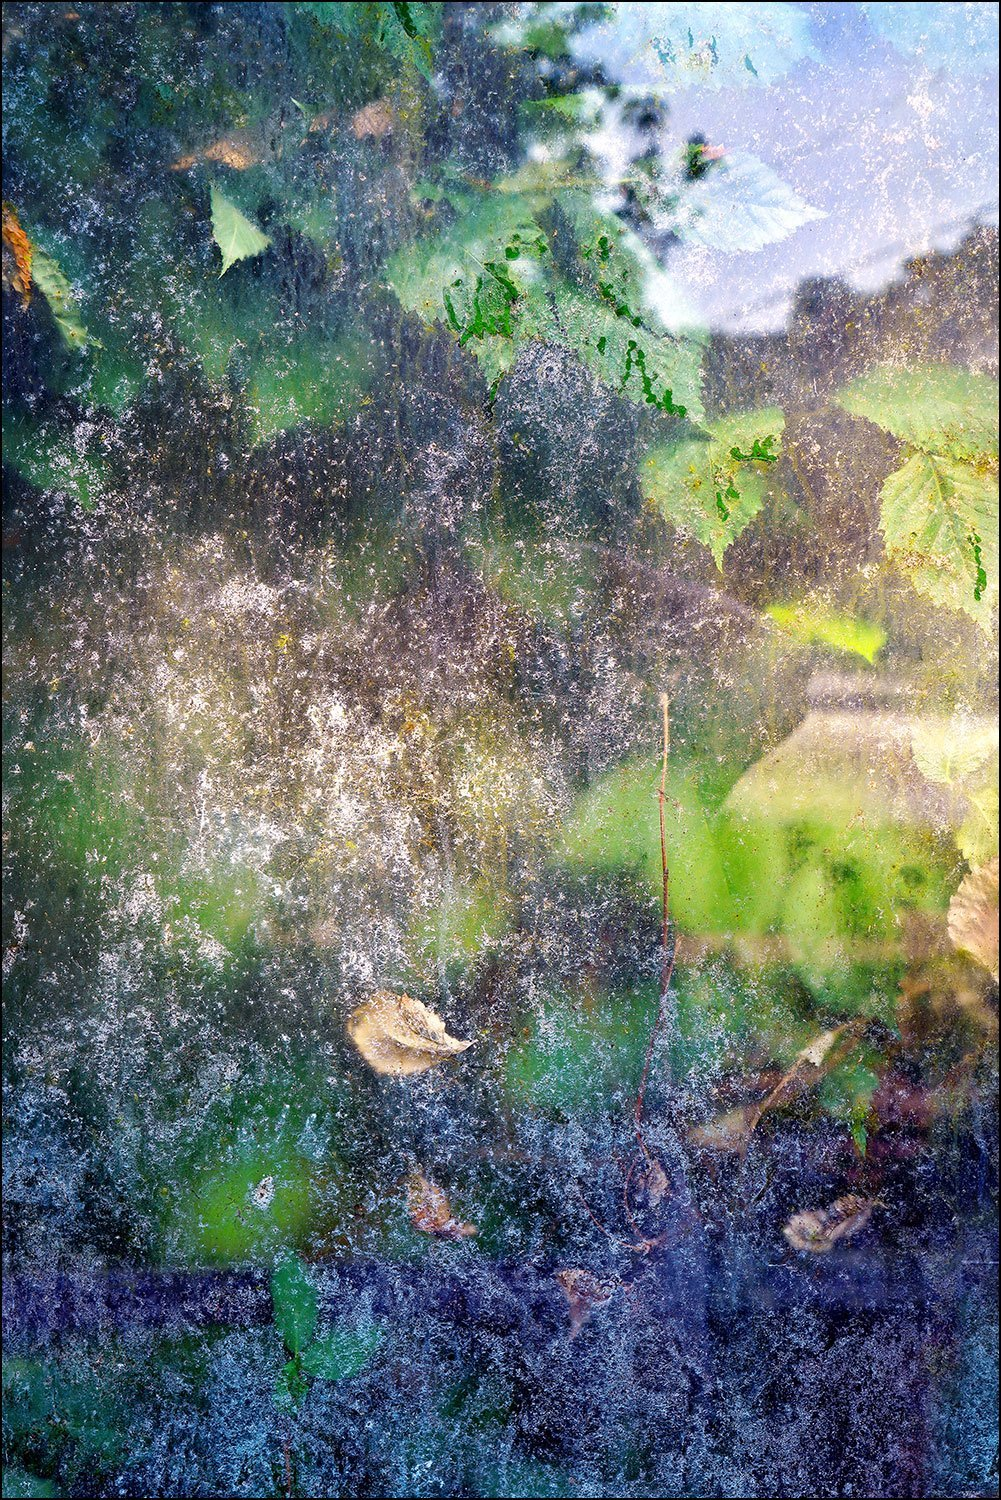 Photograph nature abstract of colorful greenhouse window with leaves by Bob Estrin Fine Art Photography